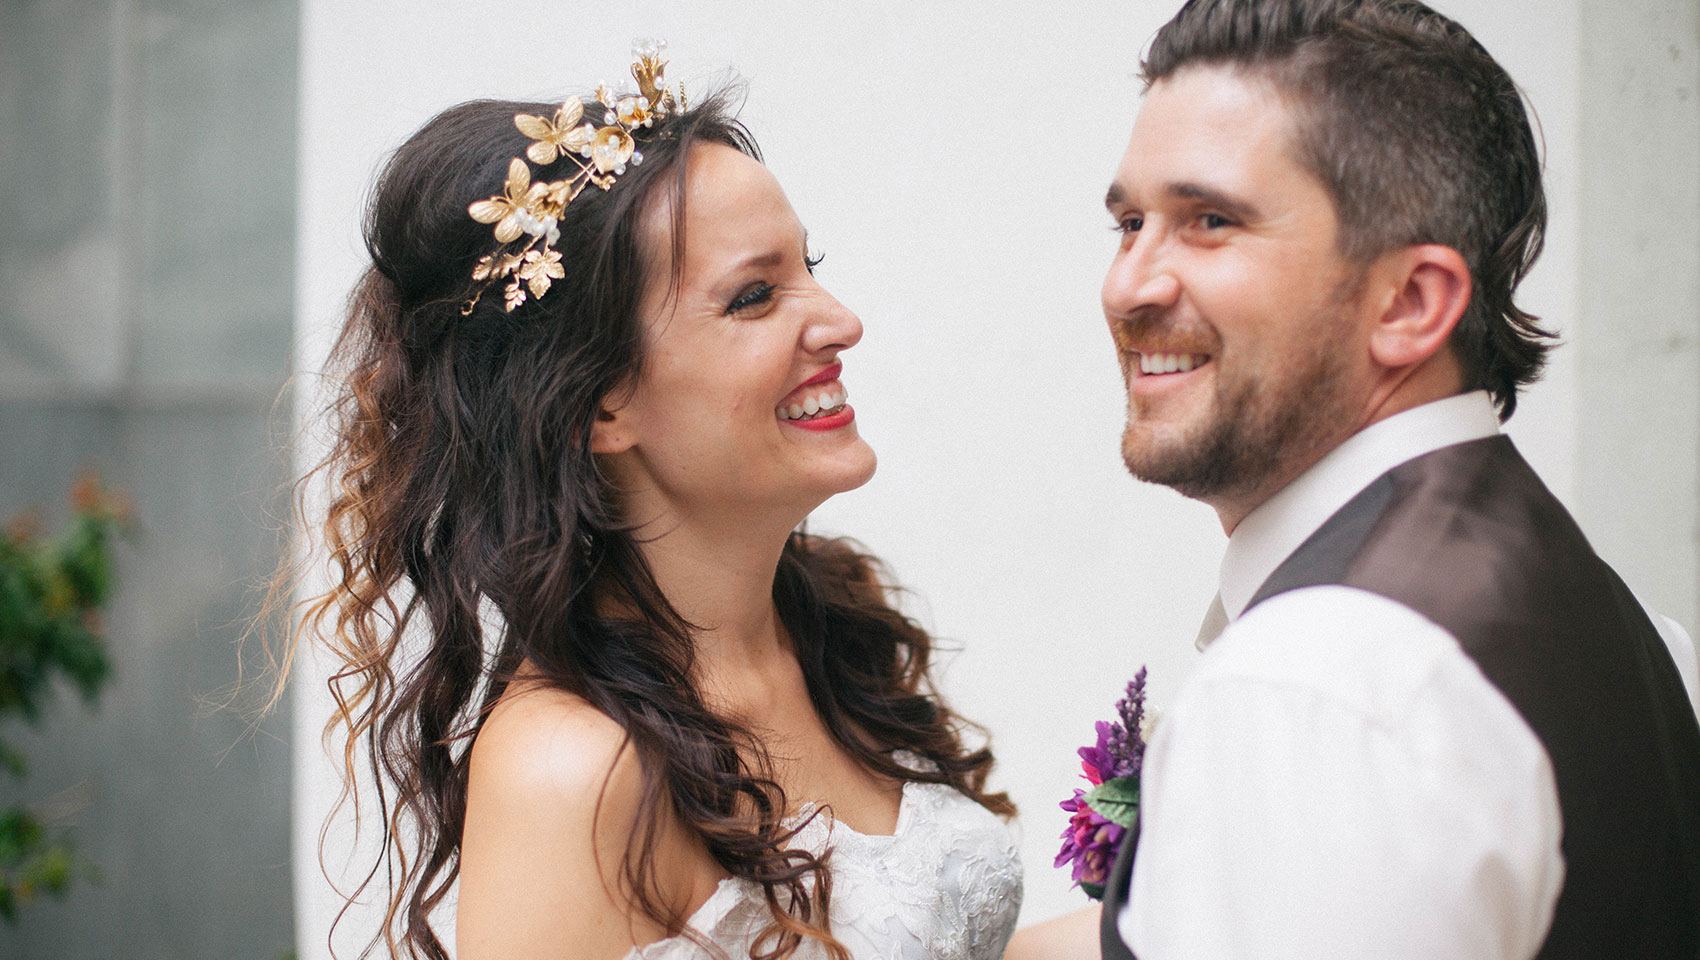 bride with flower crown smiling with groom in tuxedo vest